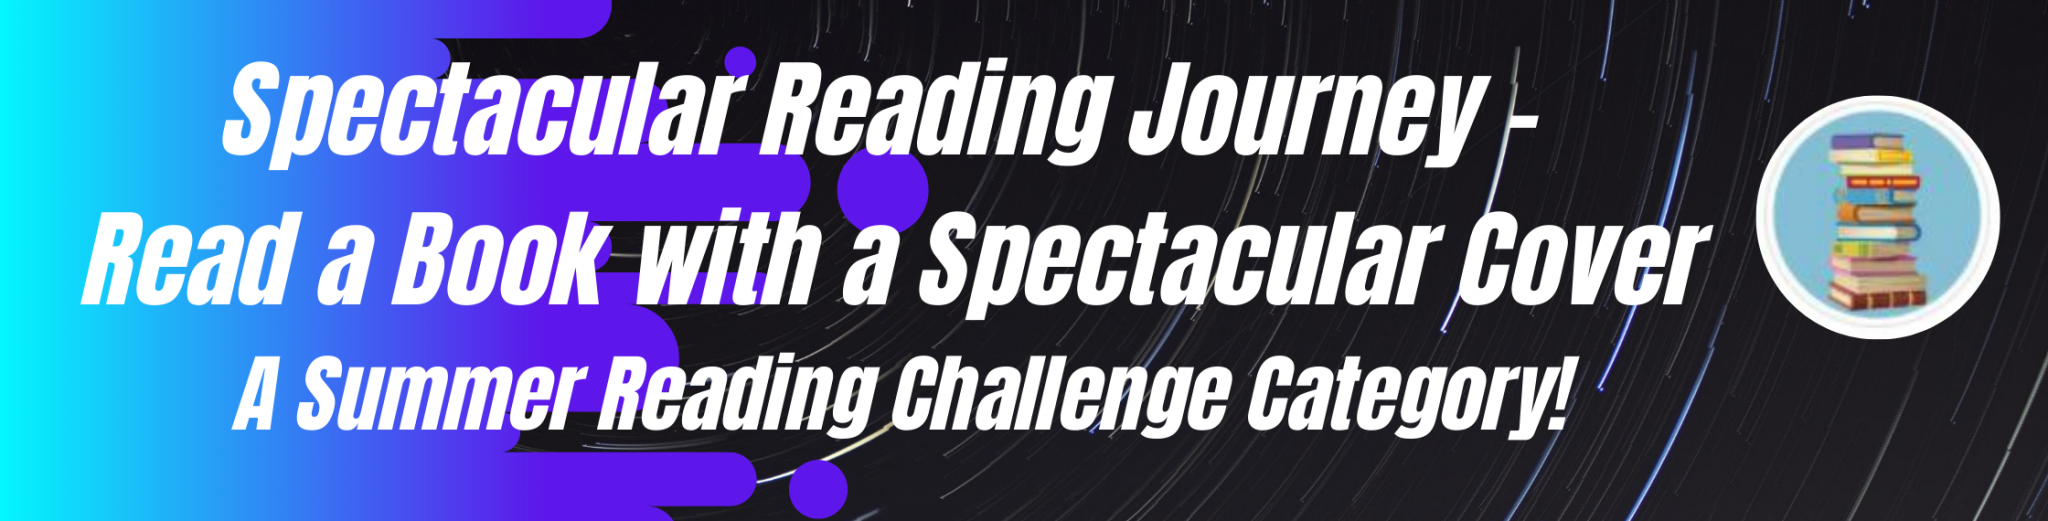 spectacular reading journey - read a book with a spectacular cover (a summer reading challenge category)